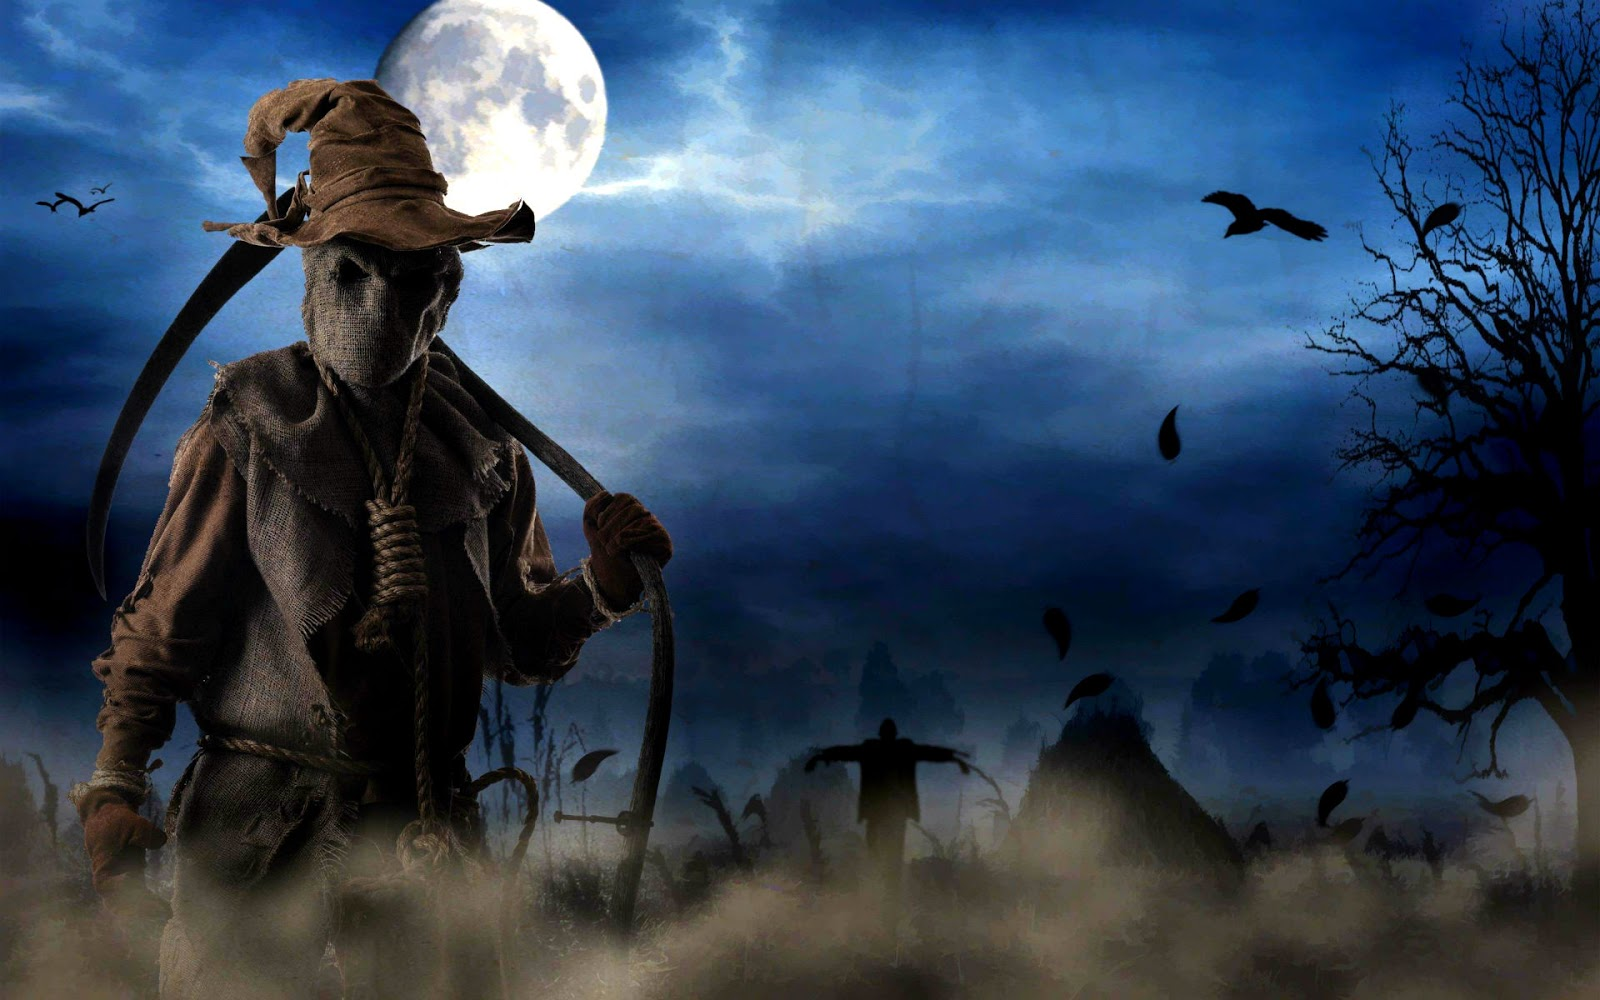 Happy Halloween Wishes, Cards, Display Pictures, Animations, Greetings,  Emotions, Festivals